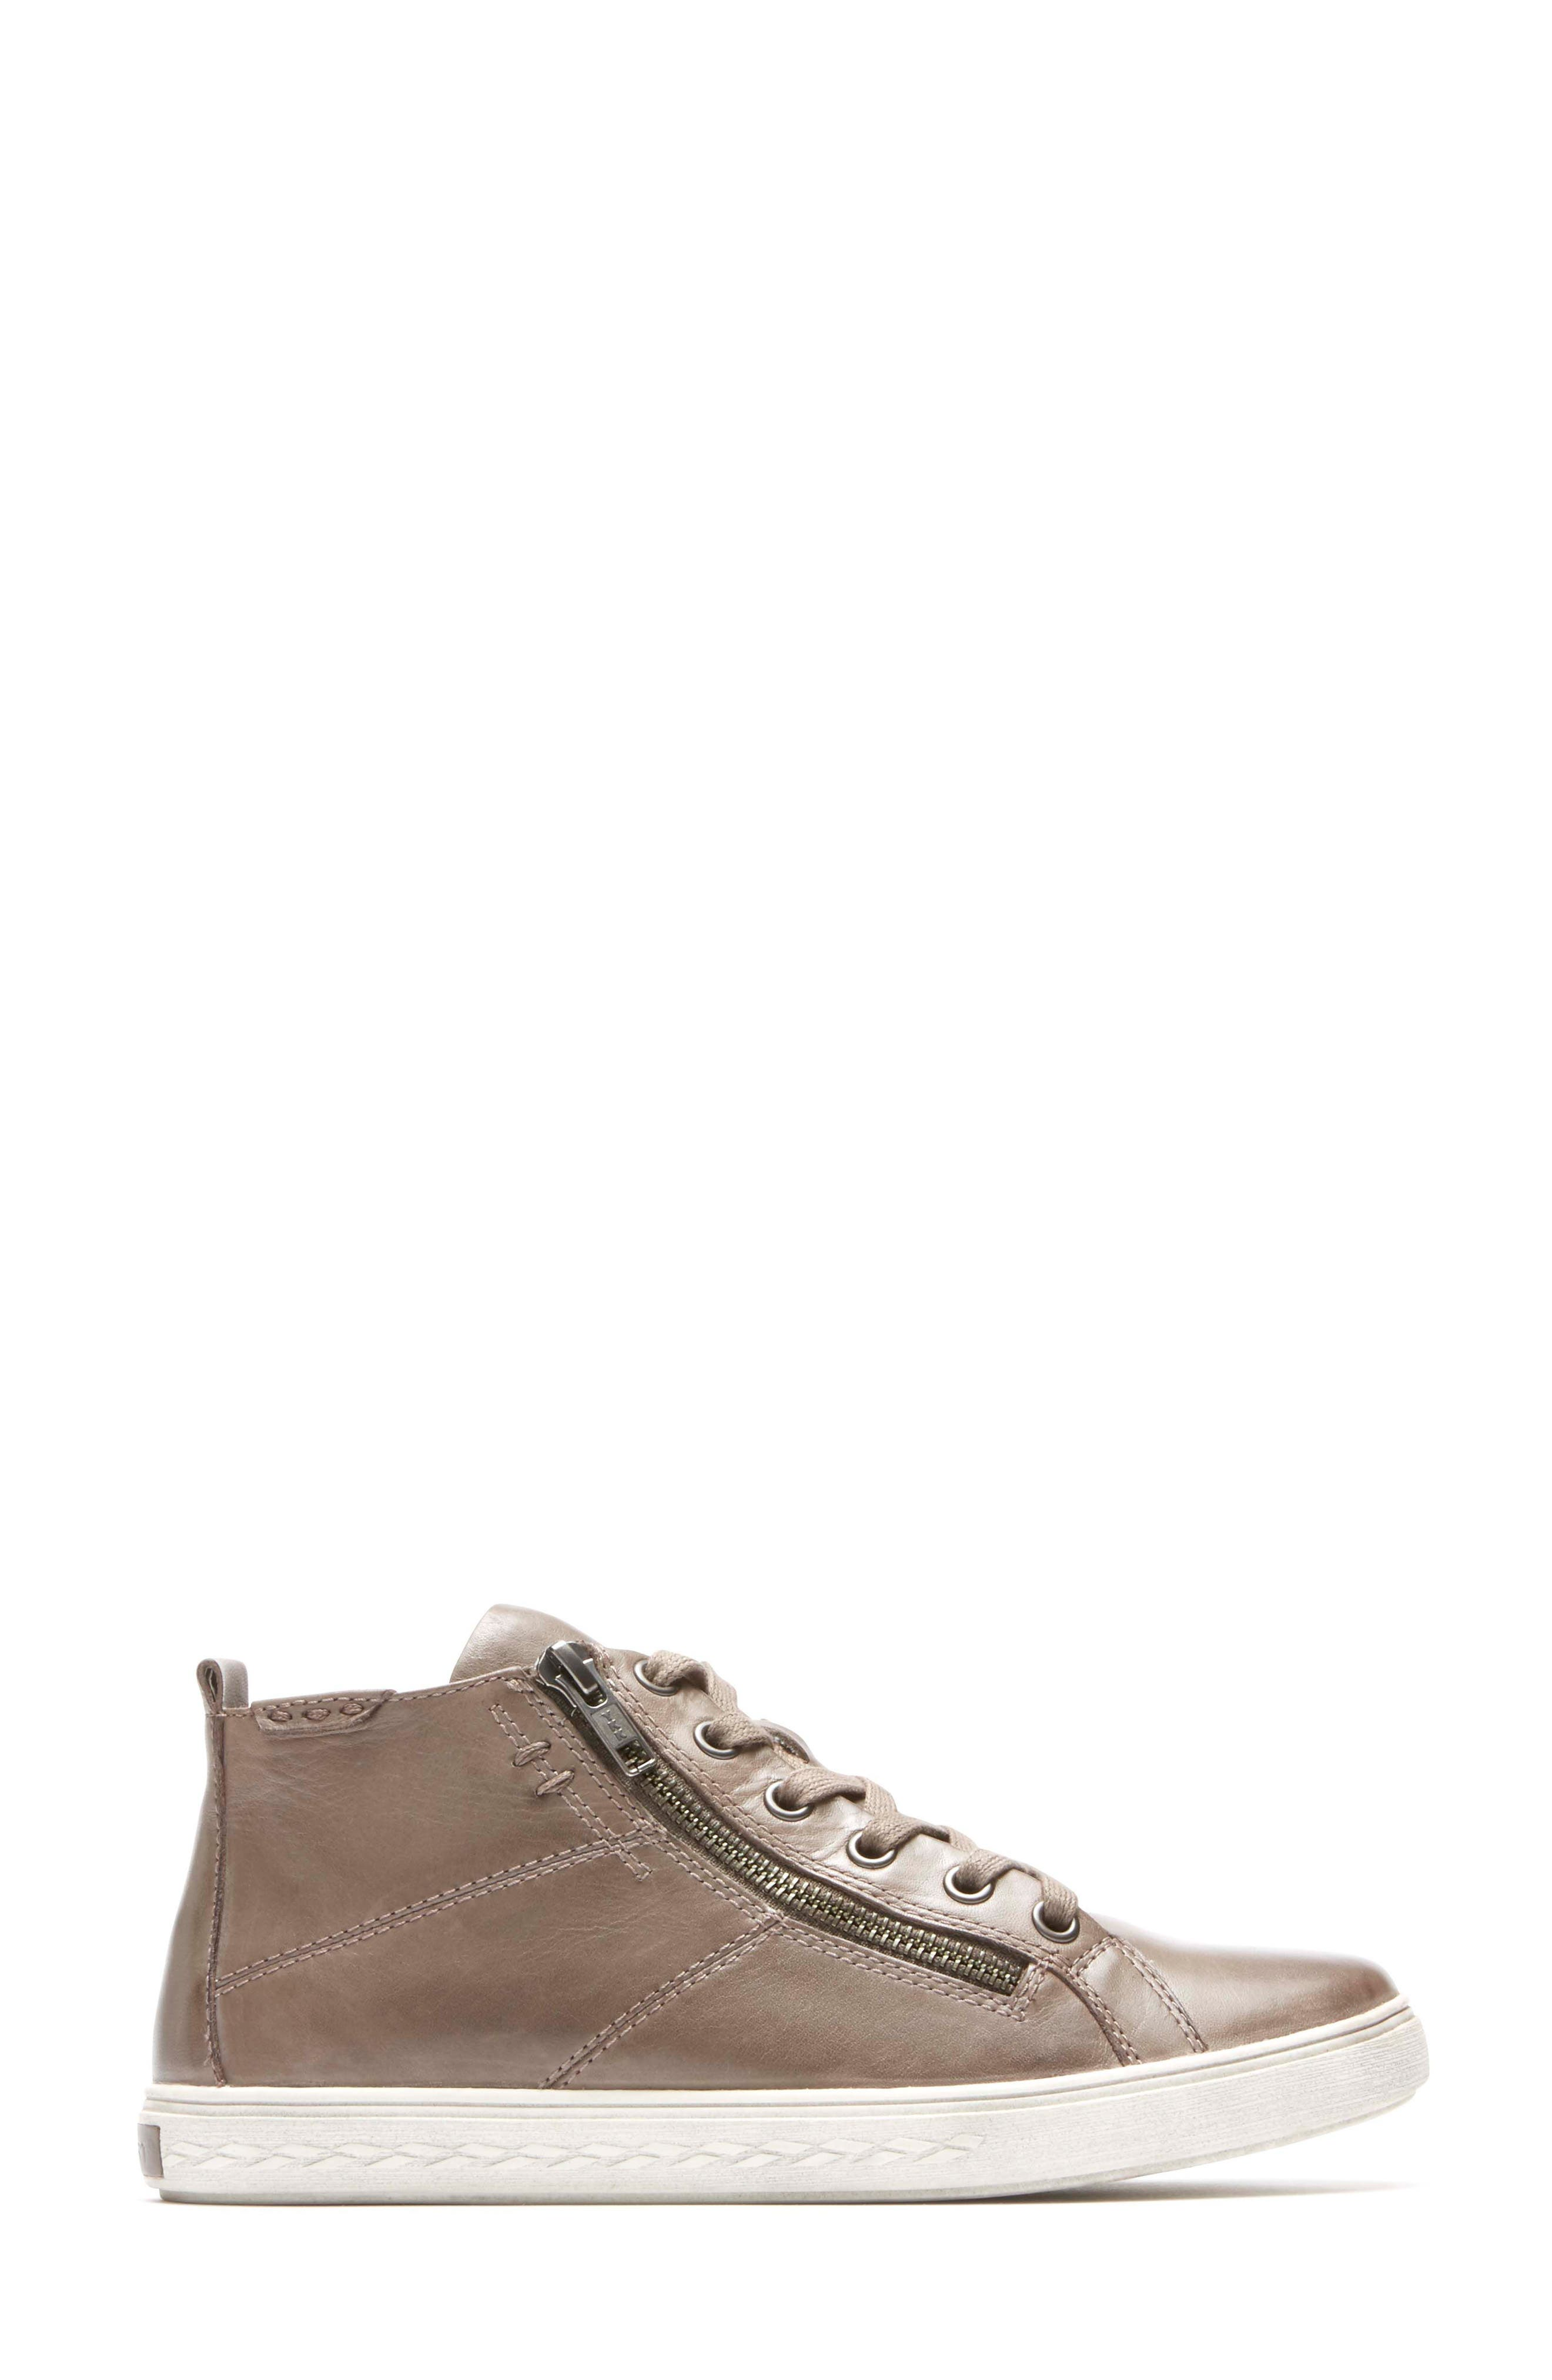 Willa High Top Sneaker,                             Alternate thumbnail 3, color,                             Grey Leather